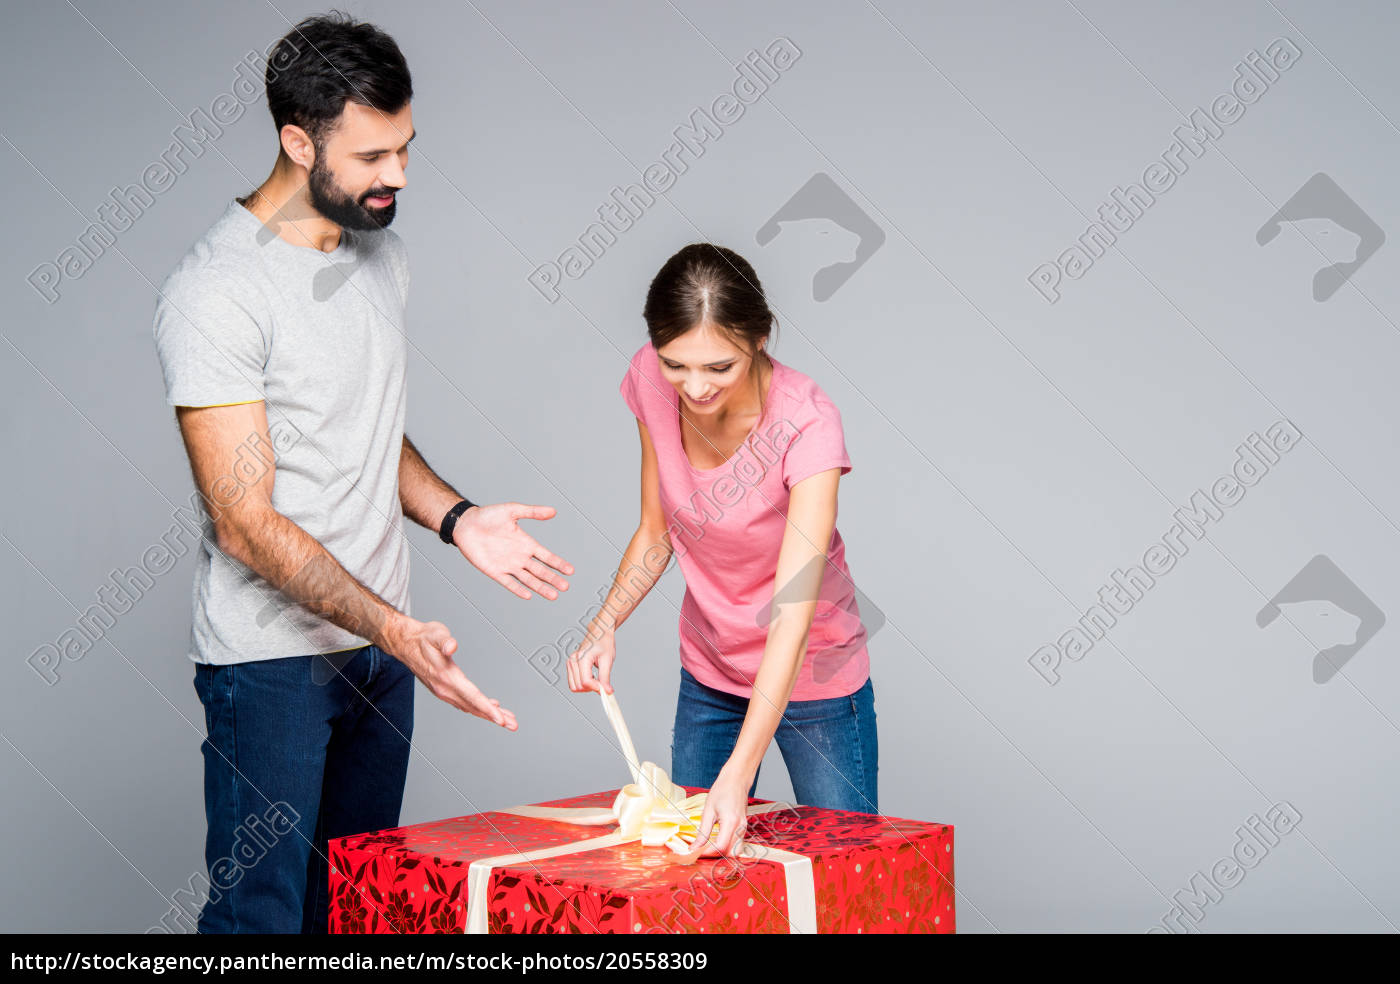 couple, with, red, gift, box - 20558309